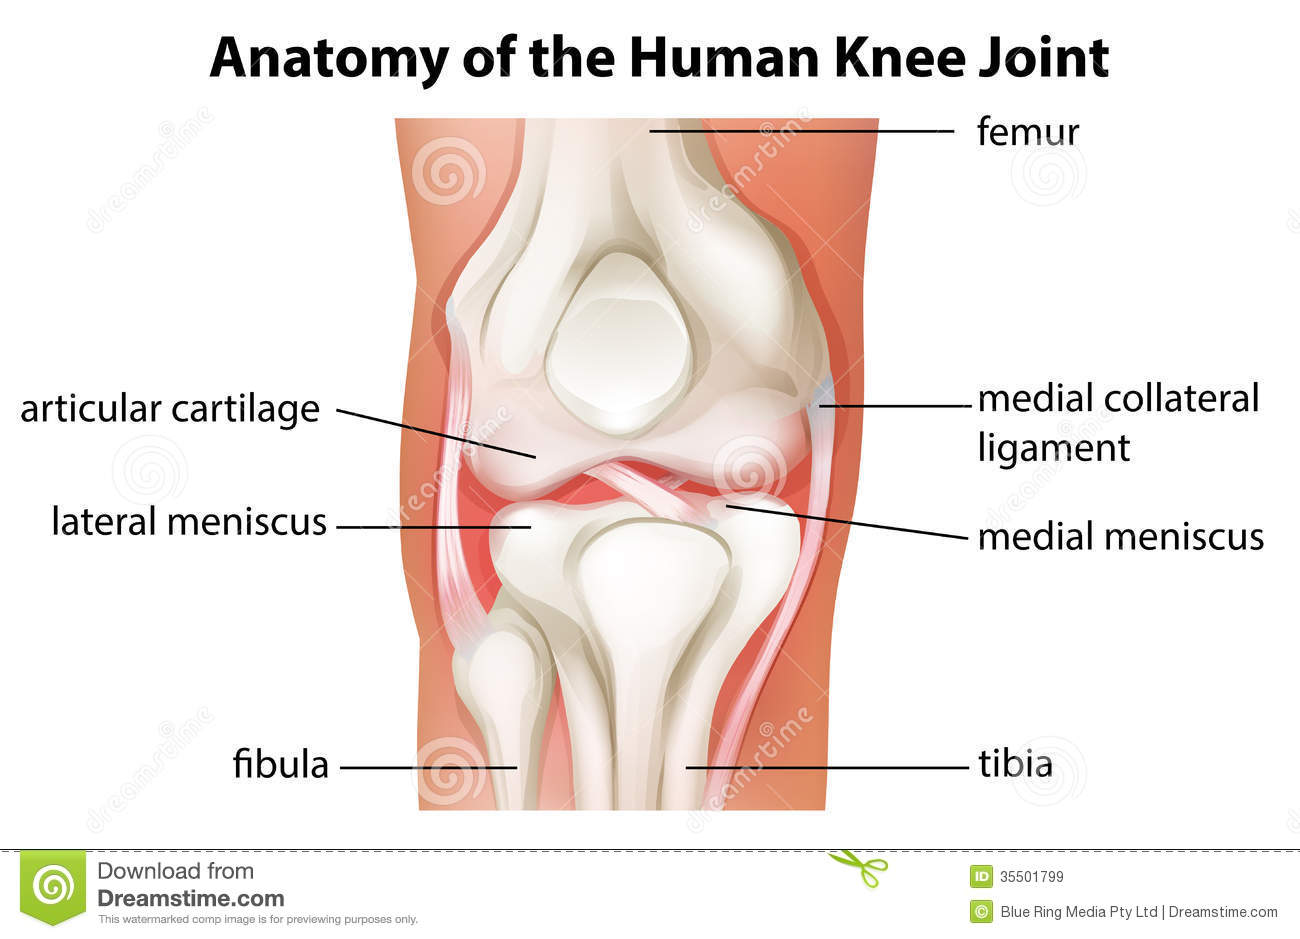 Royalty Free Stock Images Human Knee Joint Anatomy Illustration White Background Image35501799